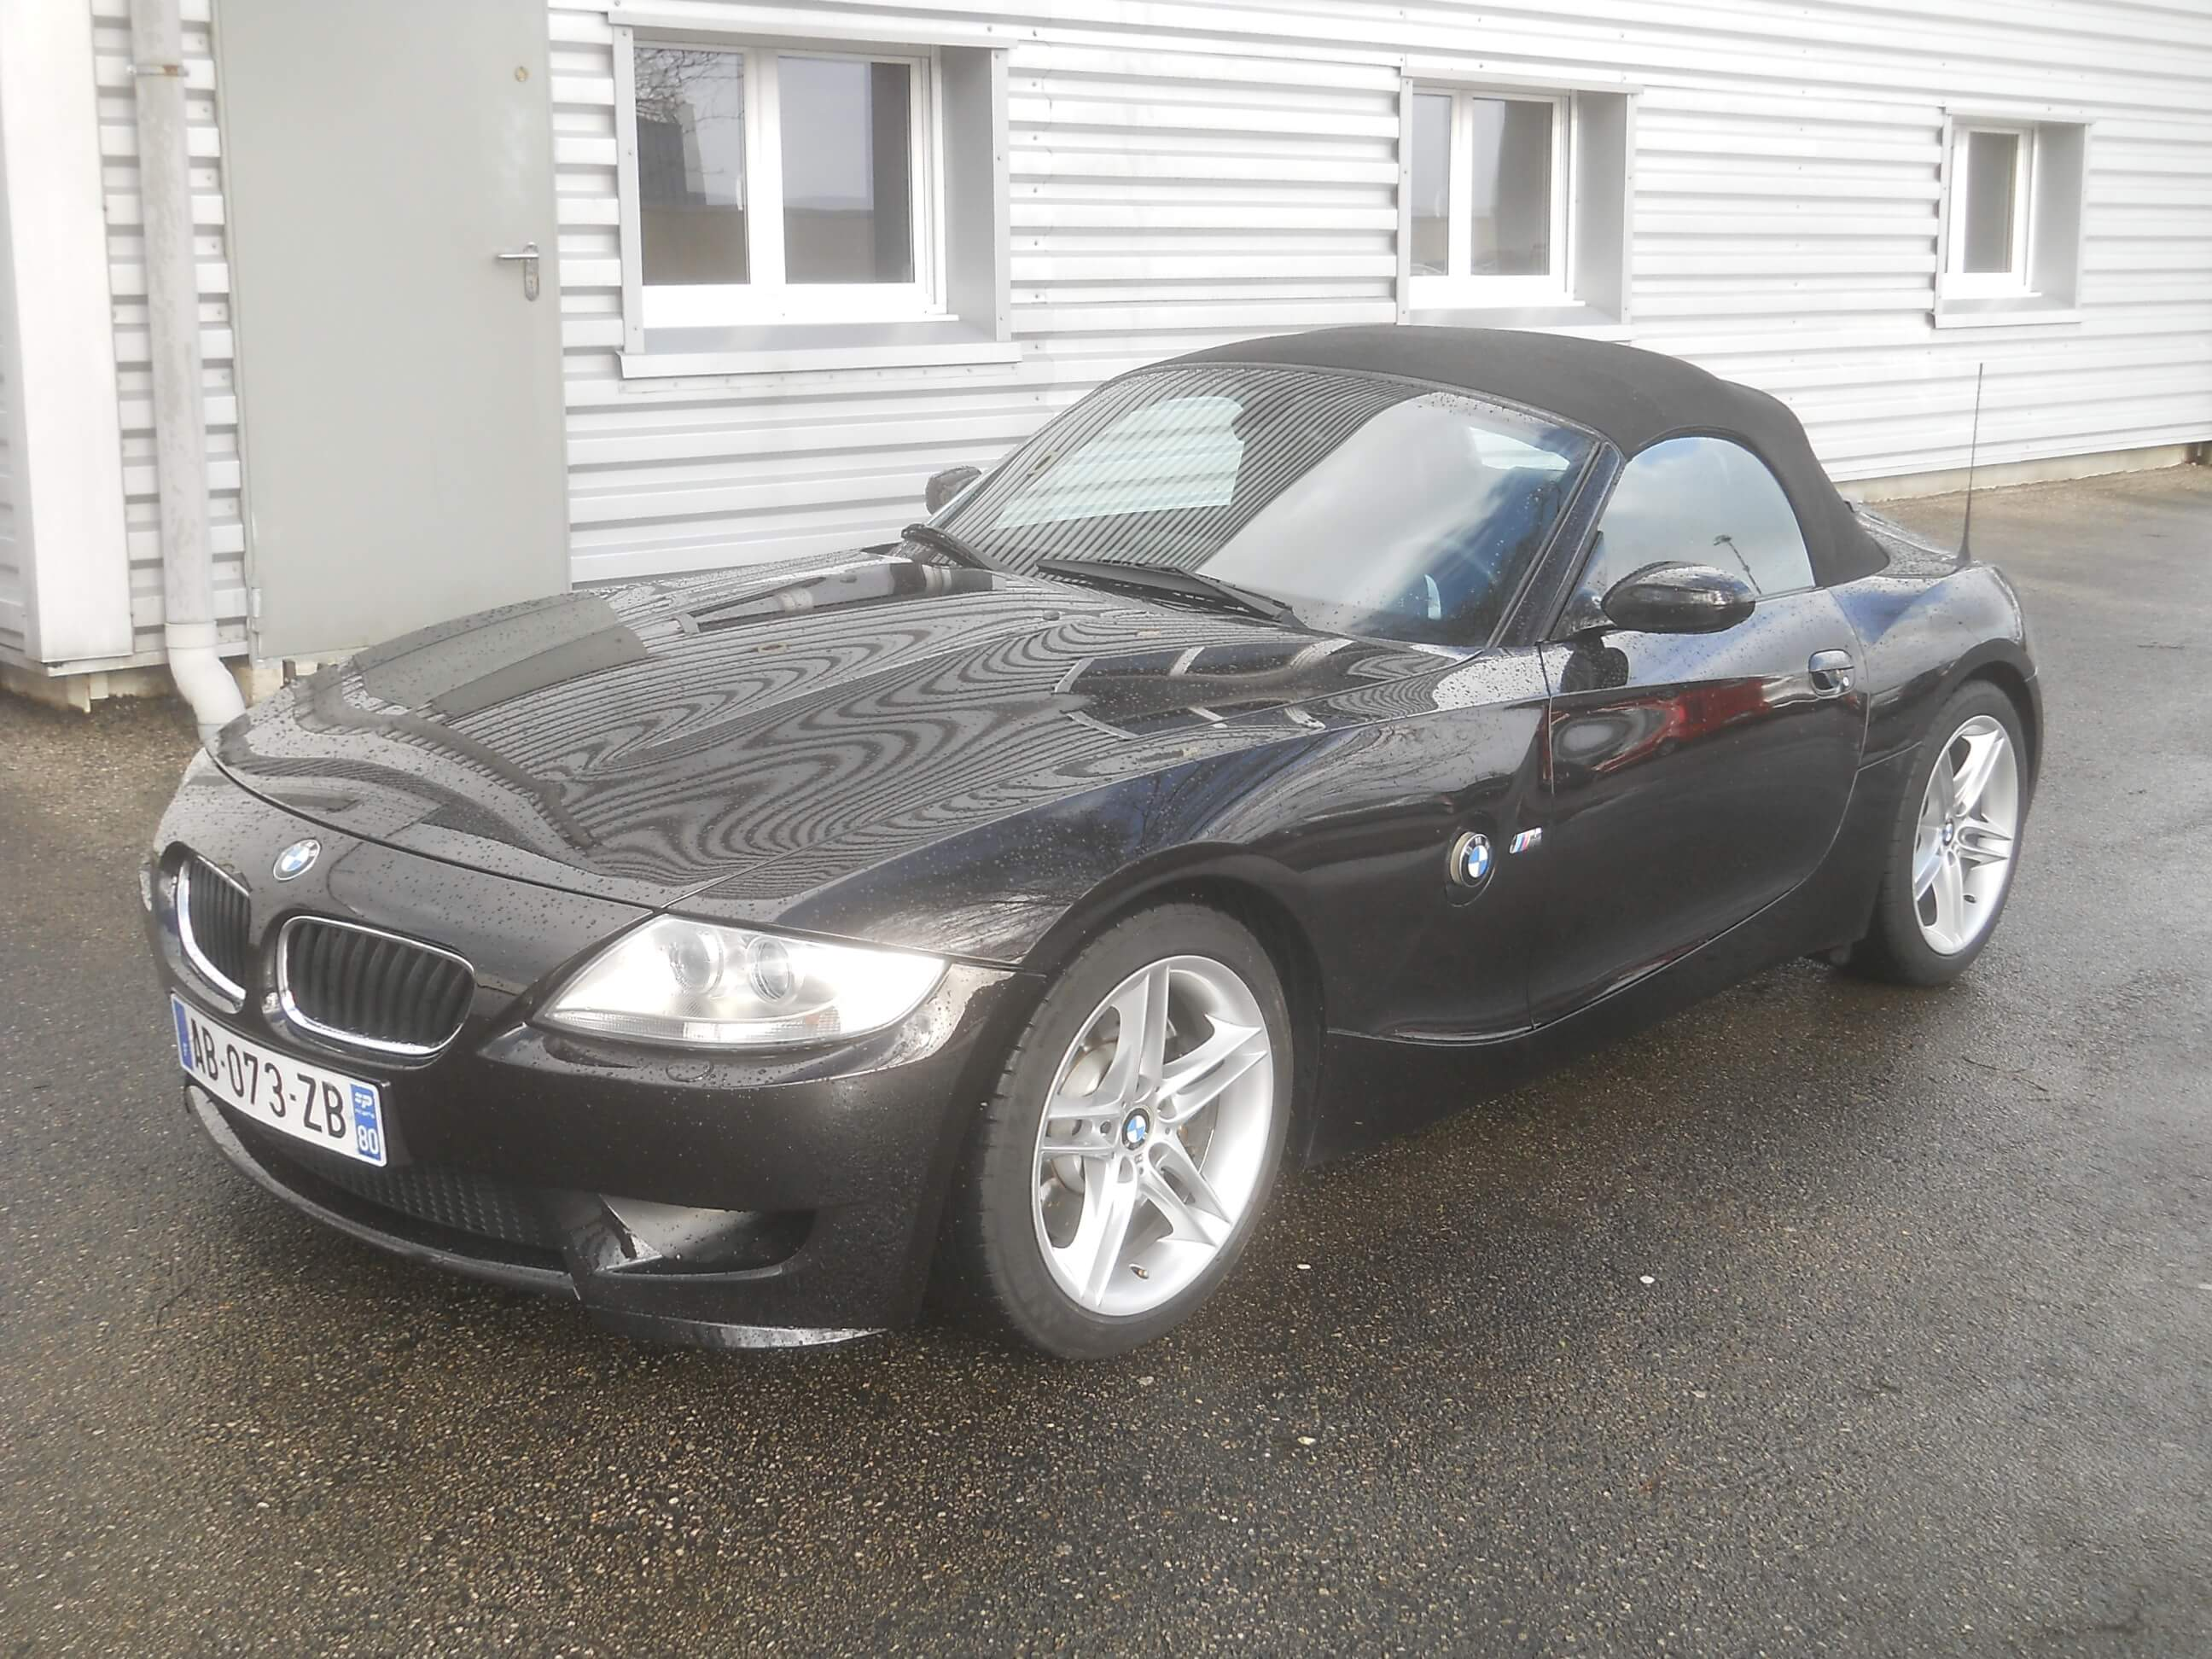 voiture occasion bmw z4 labellis e vendre amiens ref 835. Black Bedroom Furniture Sets. Home Design Ideas